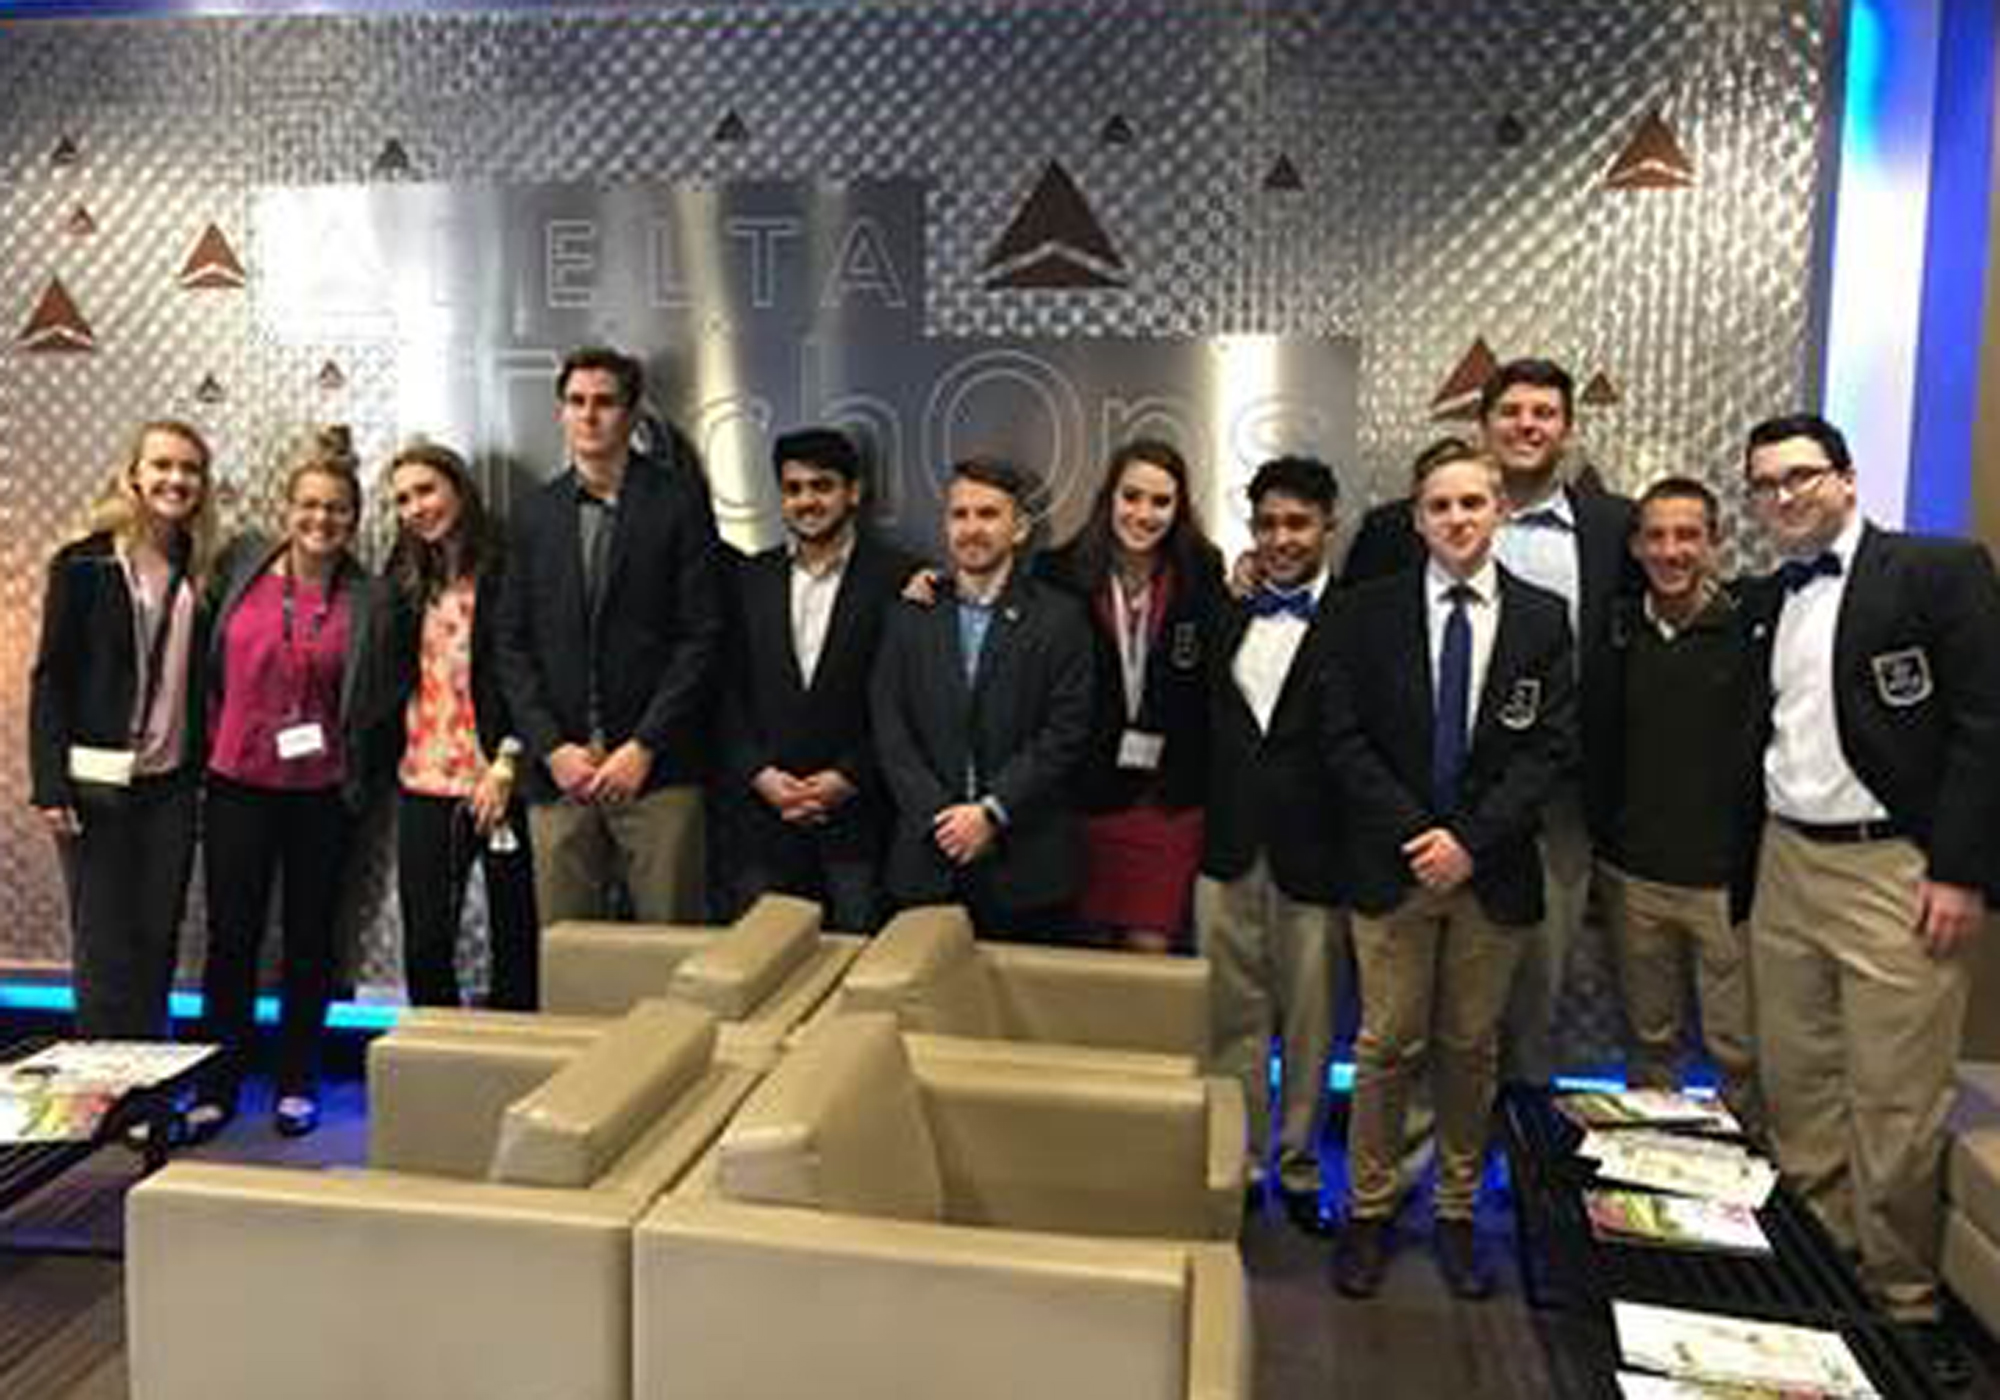 Avon Chamber Fund at HCCF Provides Grant to DECA Students to Attend International Competition.